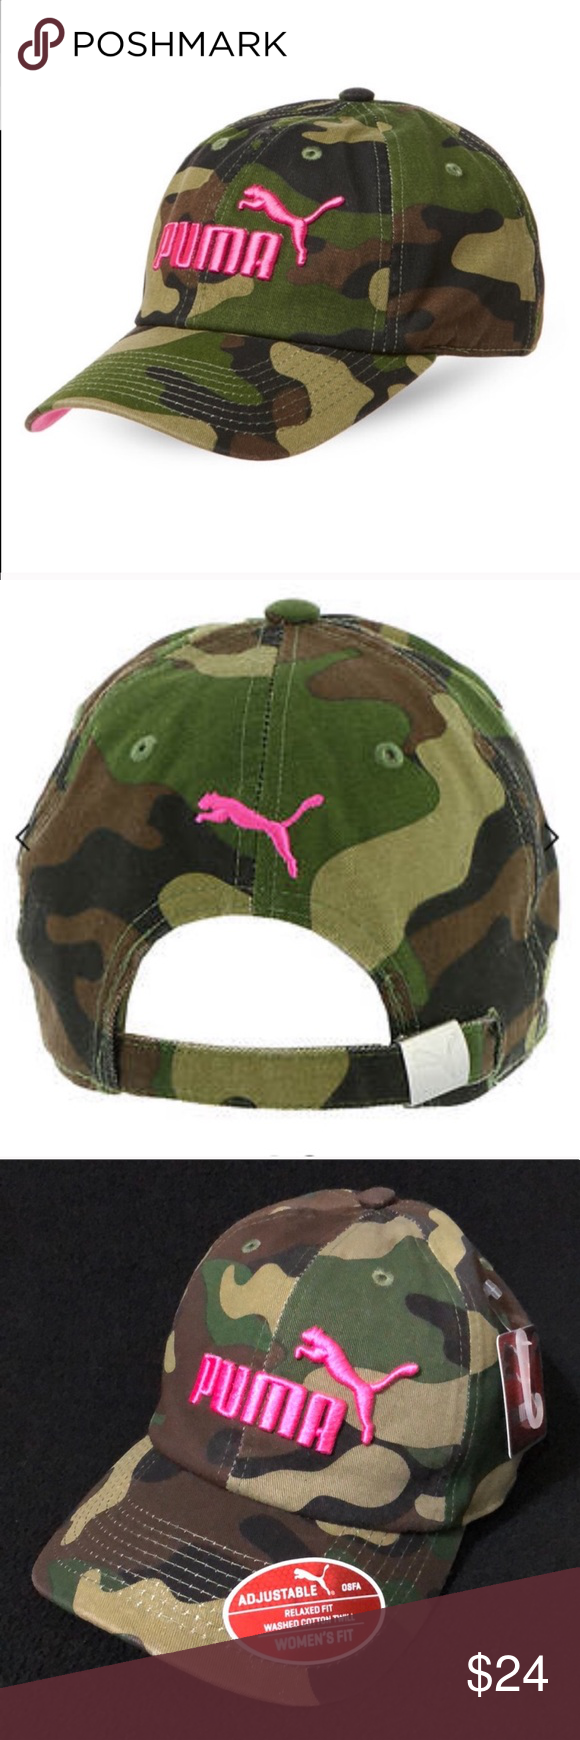 a5f69139eff Puma Camo Cap NWT This classic Puma Cap is a great way to finish your